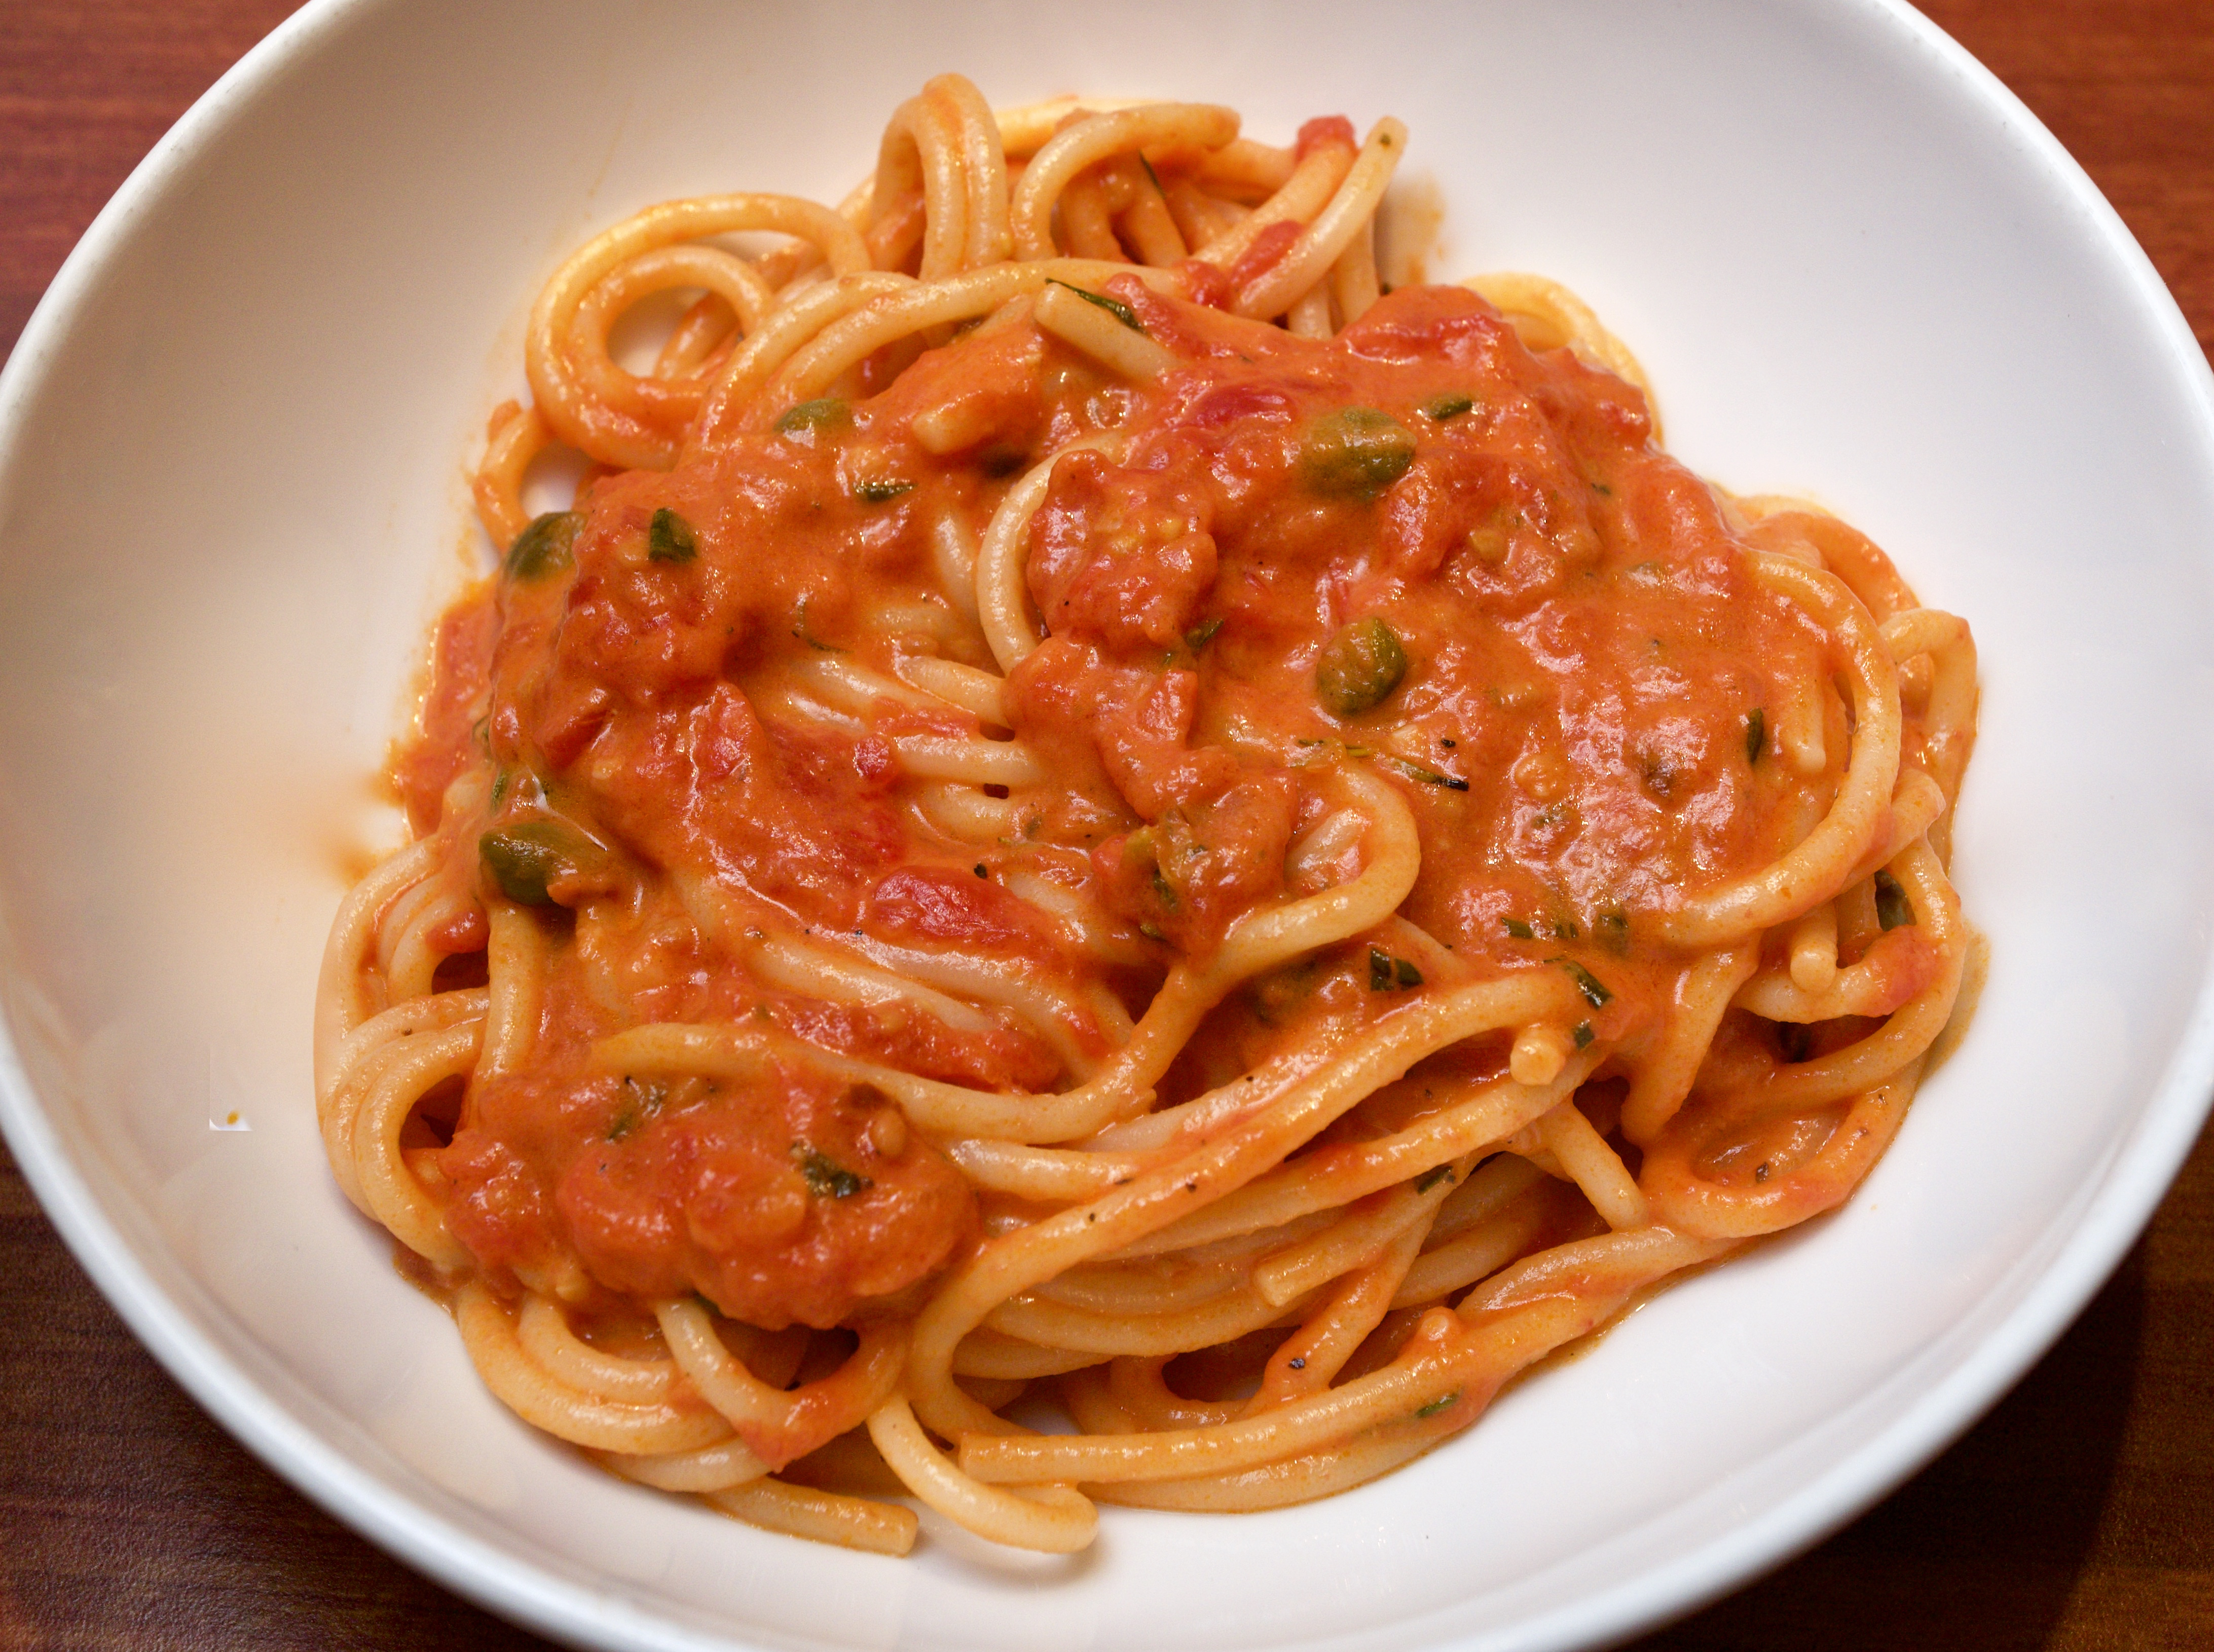 Linguine with Creamy Tomato, Rosemary & Caper Sauce